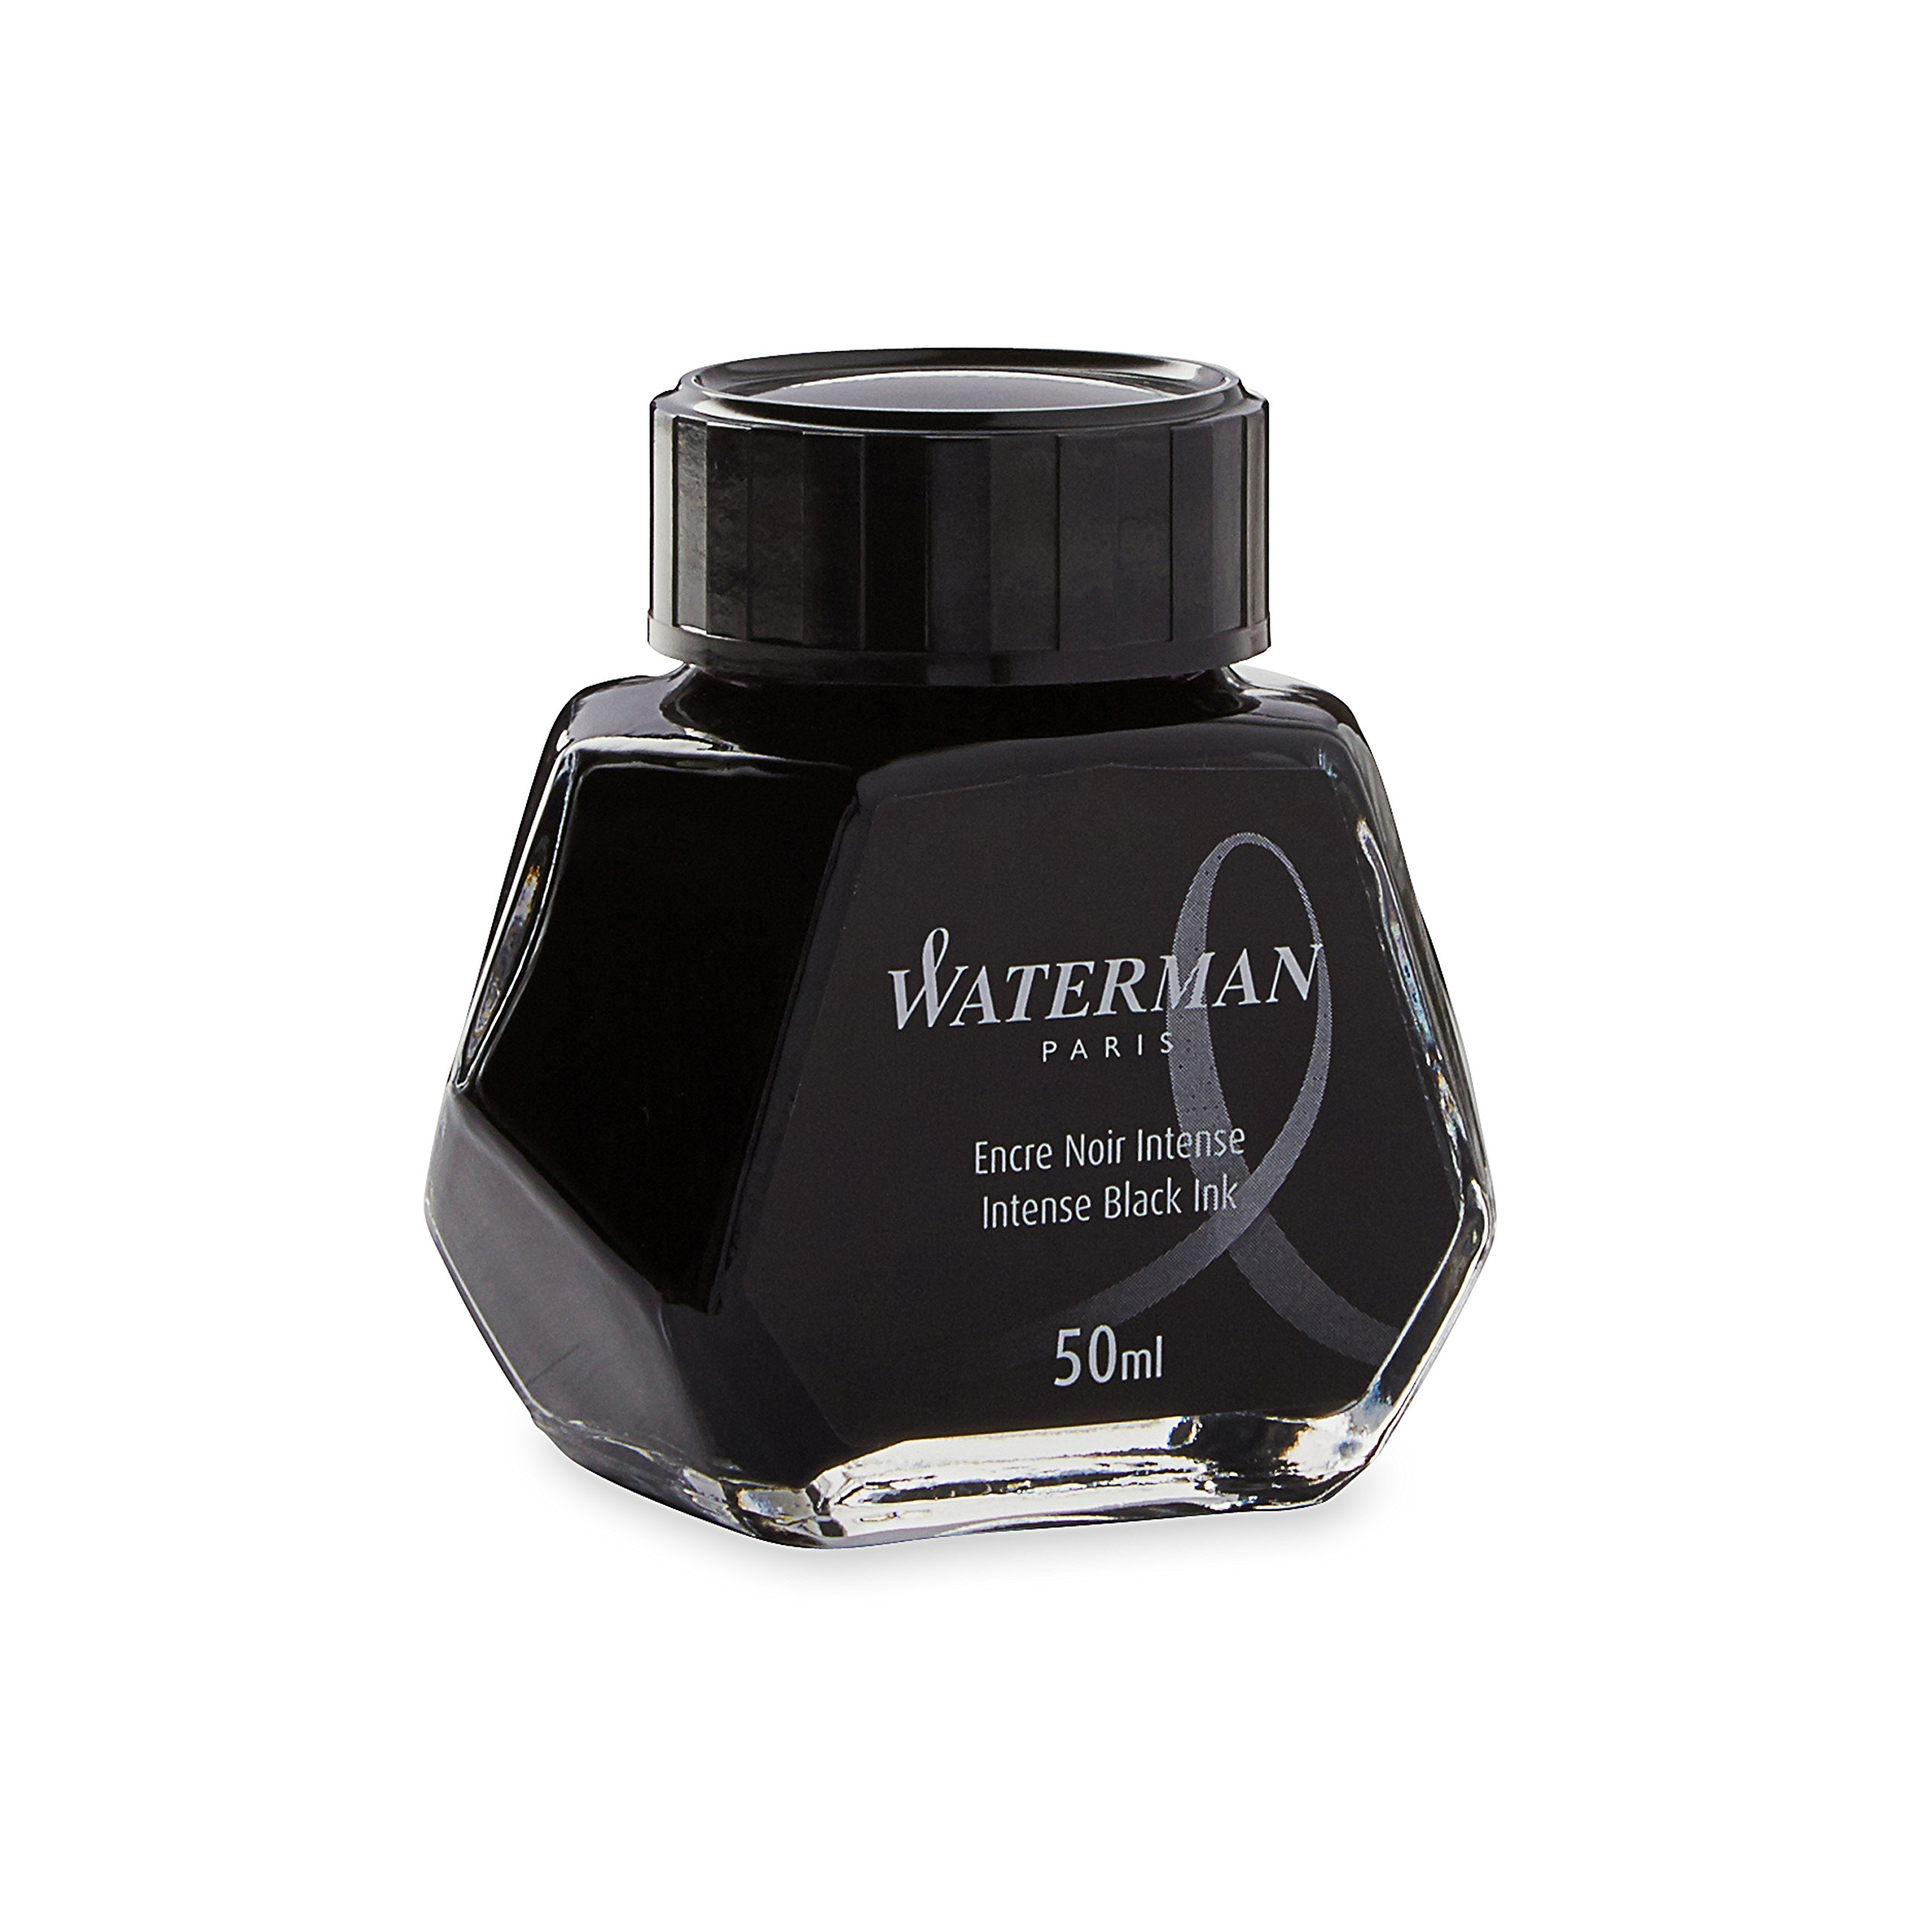 Waterman 1.7 oz Ink Bottle for Fountain Pens, Intense Black (S0110710)